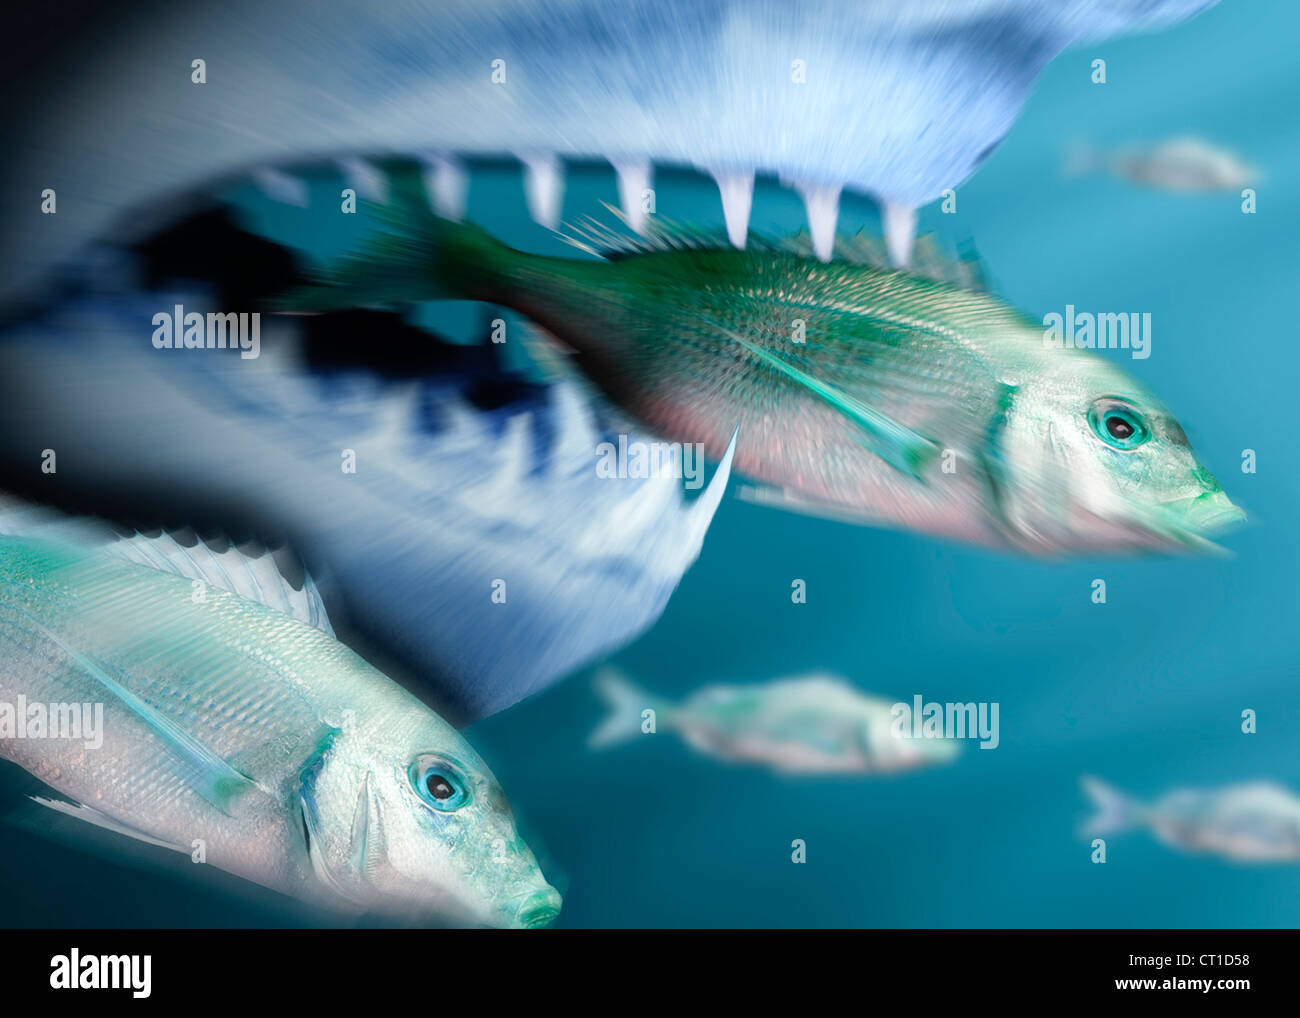 Shark catches smaller fish - Stock Image